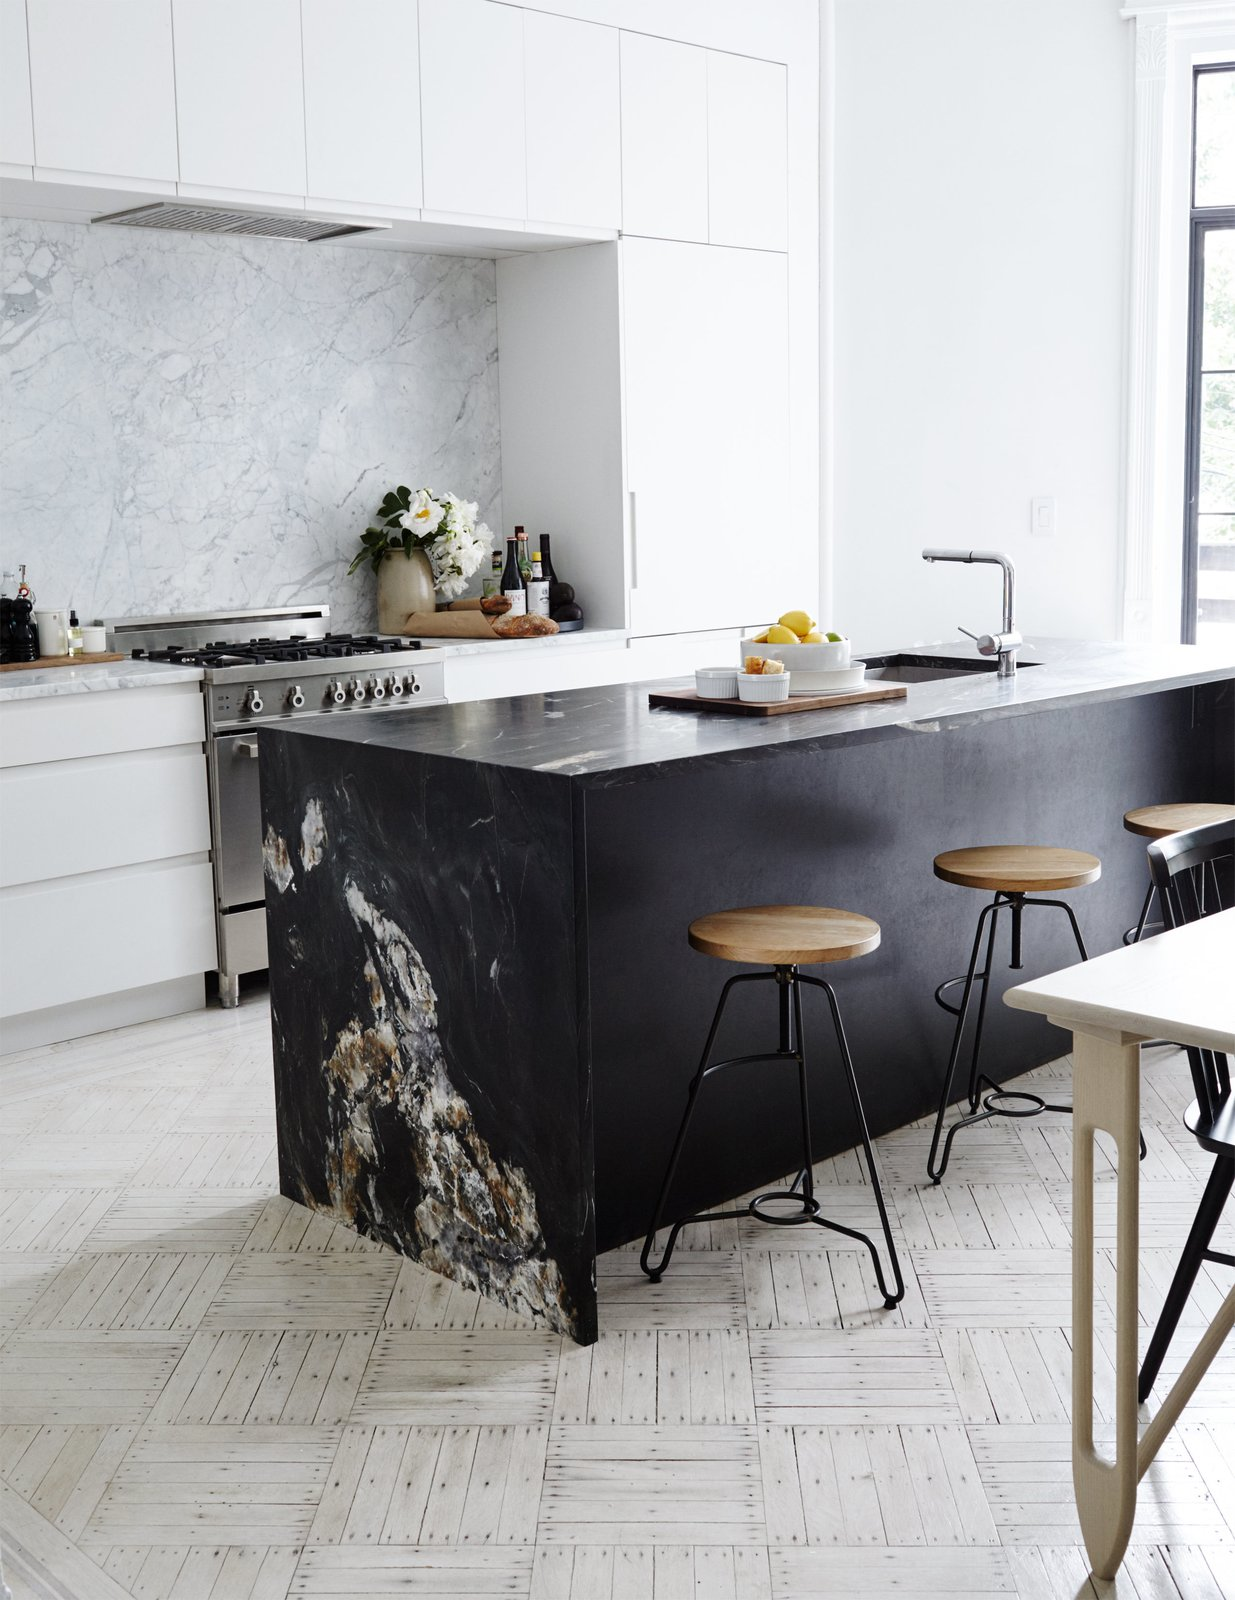 Madalena-Gnewikow Residence kitchen with matte-black natural patterned quartzite island in front of sets of white kitchen cabinets and counters and backsplash dressed with white quartzite.